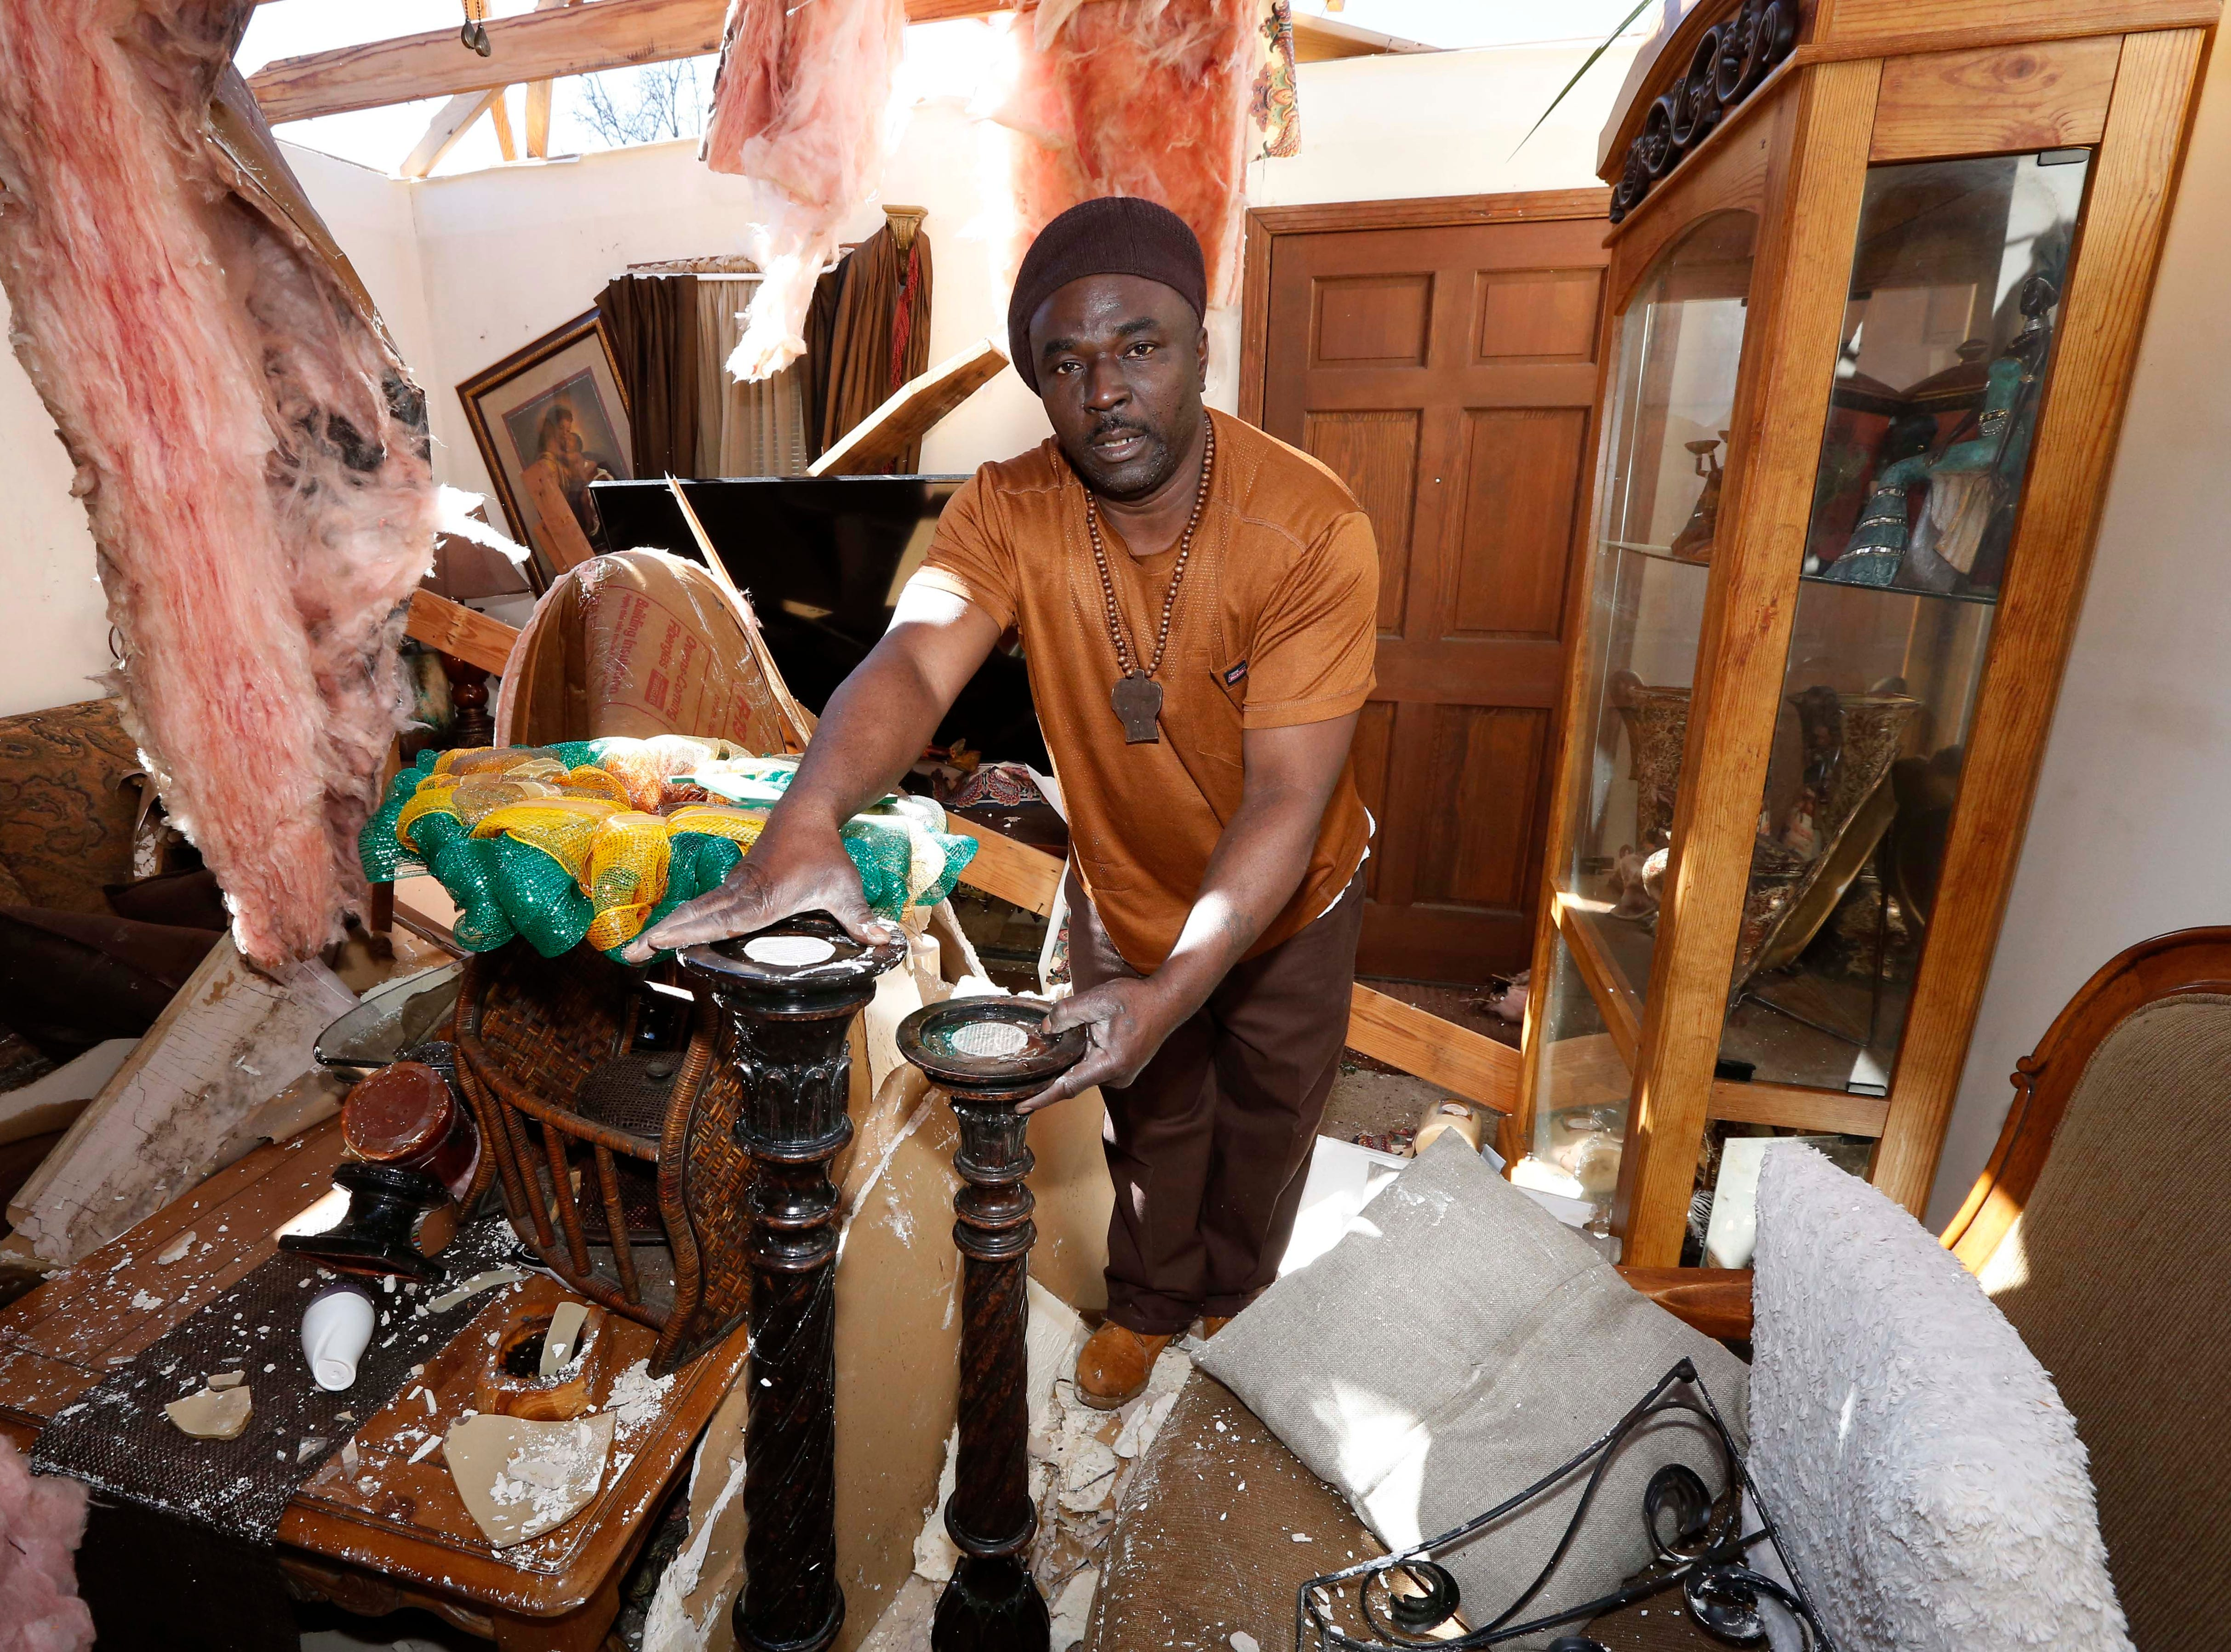 Charles Lowery of Columbus, Miss., rescues carved stands from the remains of his home, Sunday, Feb. 24, 2019, following Saturday's tornado. Lowery lamented not staying at home and protecting his property as his home was looted that evening. (AP Photo/Rogelio V. Solis)